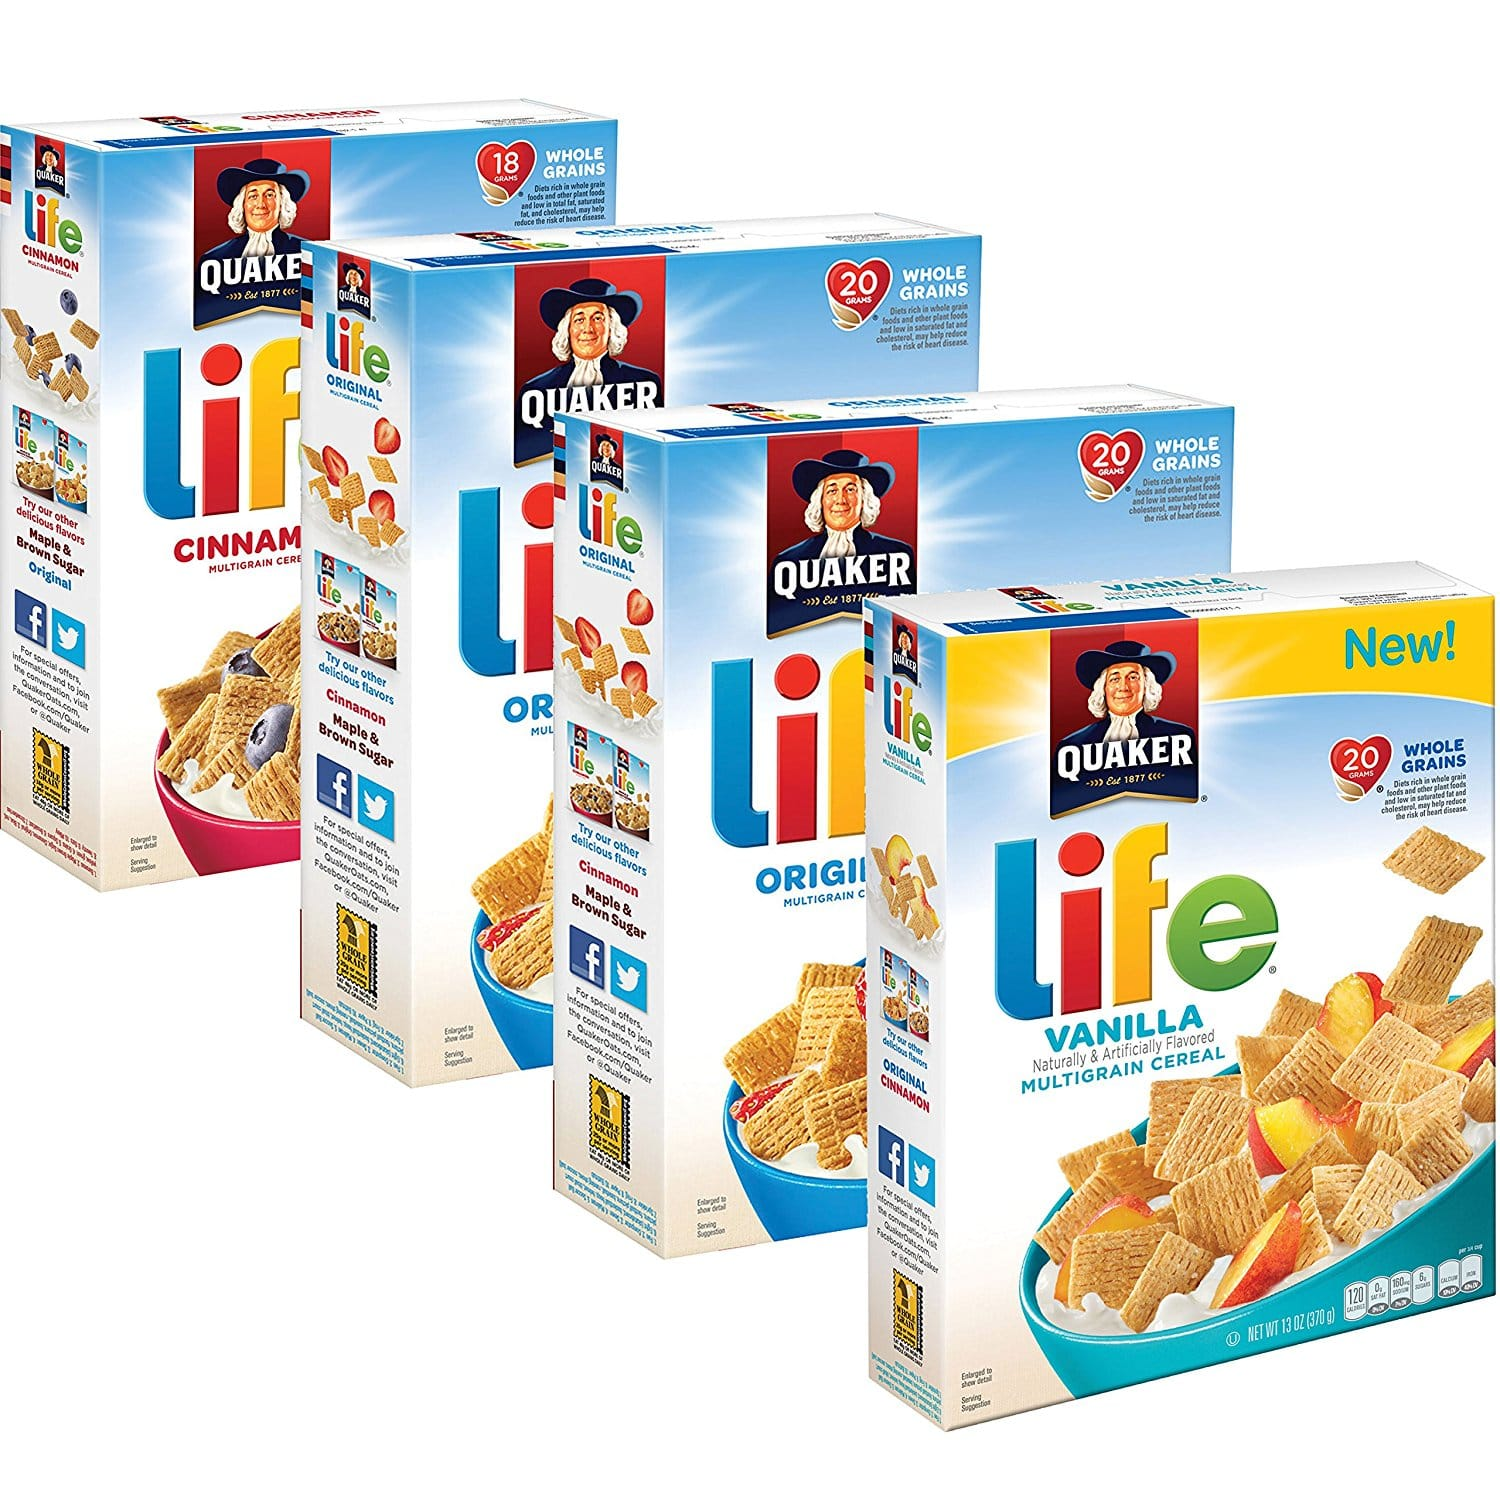 4-Count of 13oz Quaker Life Breakfast Cereal (Variety Pack) $5.83 or Less w/ S&S + Free Shipping ~ Amazon